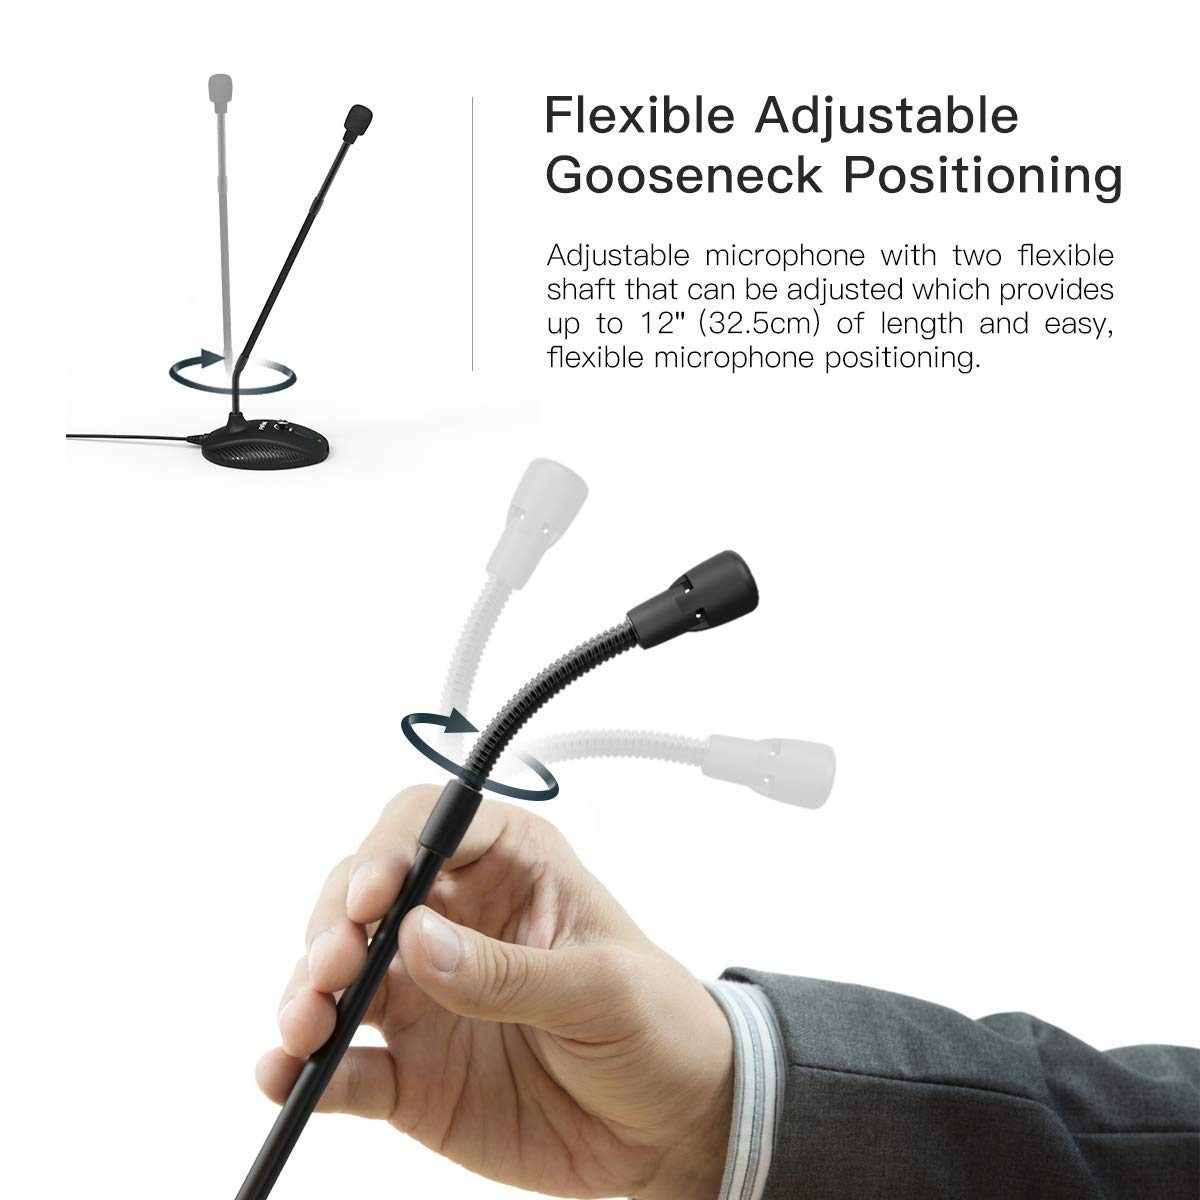 Computer Microphone,FIFINE Desktop Gooseneck Microphone,Mute Button with LED Indicator,USB Microphone for Windows/Mac.Ideal for Gaming Streaming YouTube Podcast.(K052) by FIFINE TECHNOLOGY (Image #2)